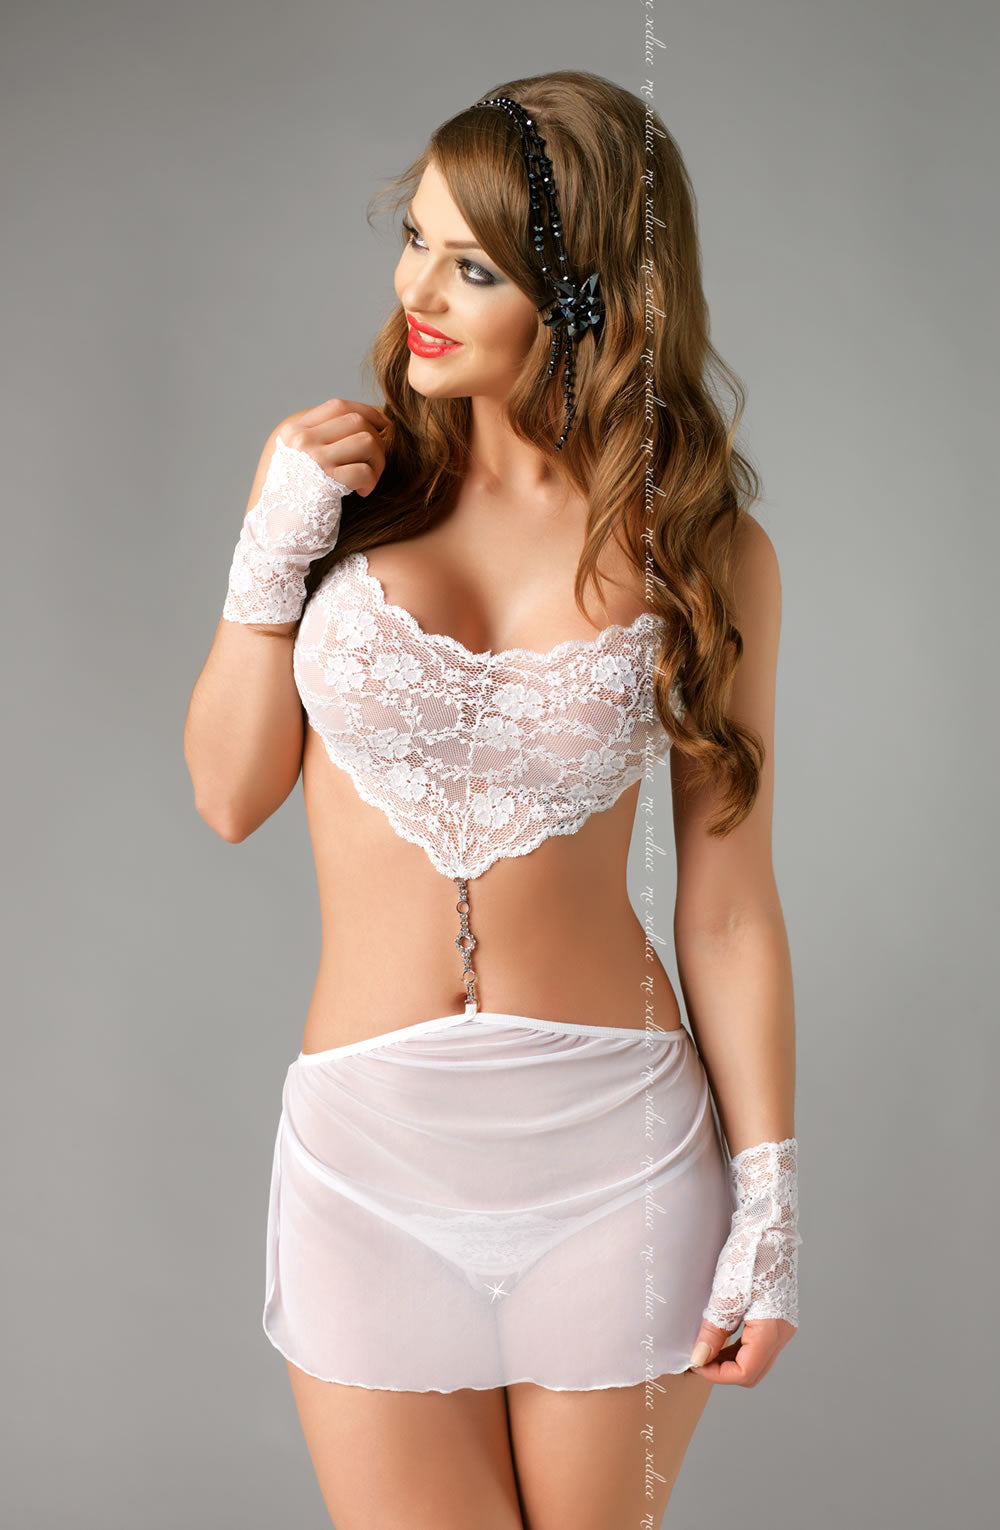 e Seduce e Seduce Elza Chemise White3  All Offers, Chemises, Honeymoon, Me Seduce, NEWLY-IMPORTED, SALE - So Luxe Lingerie